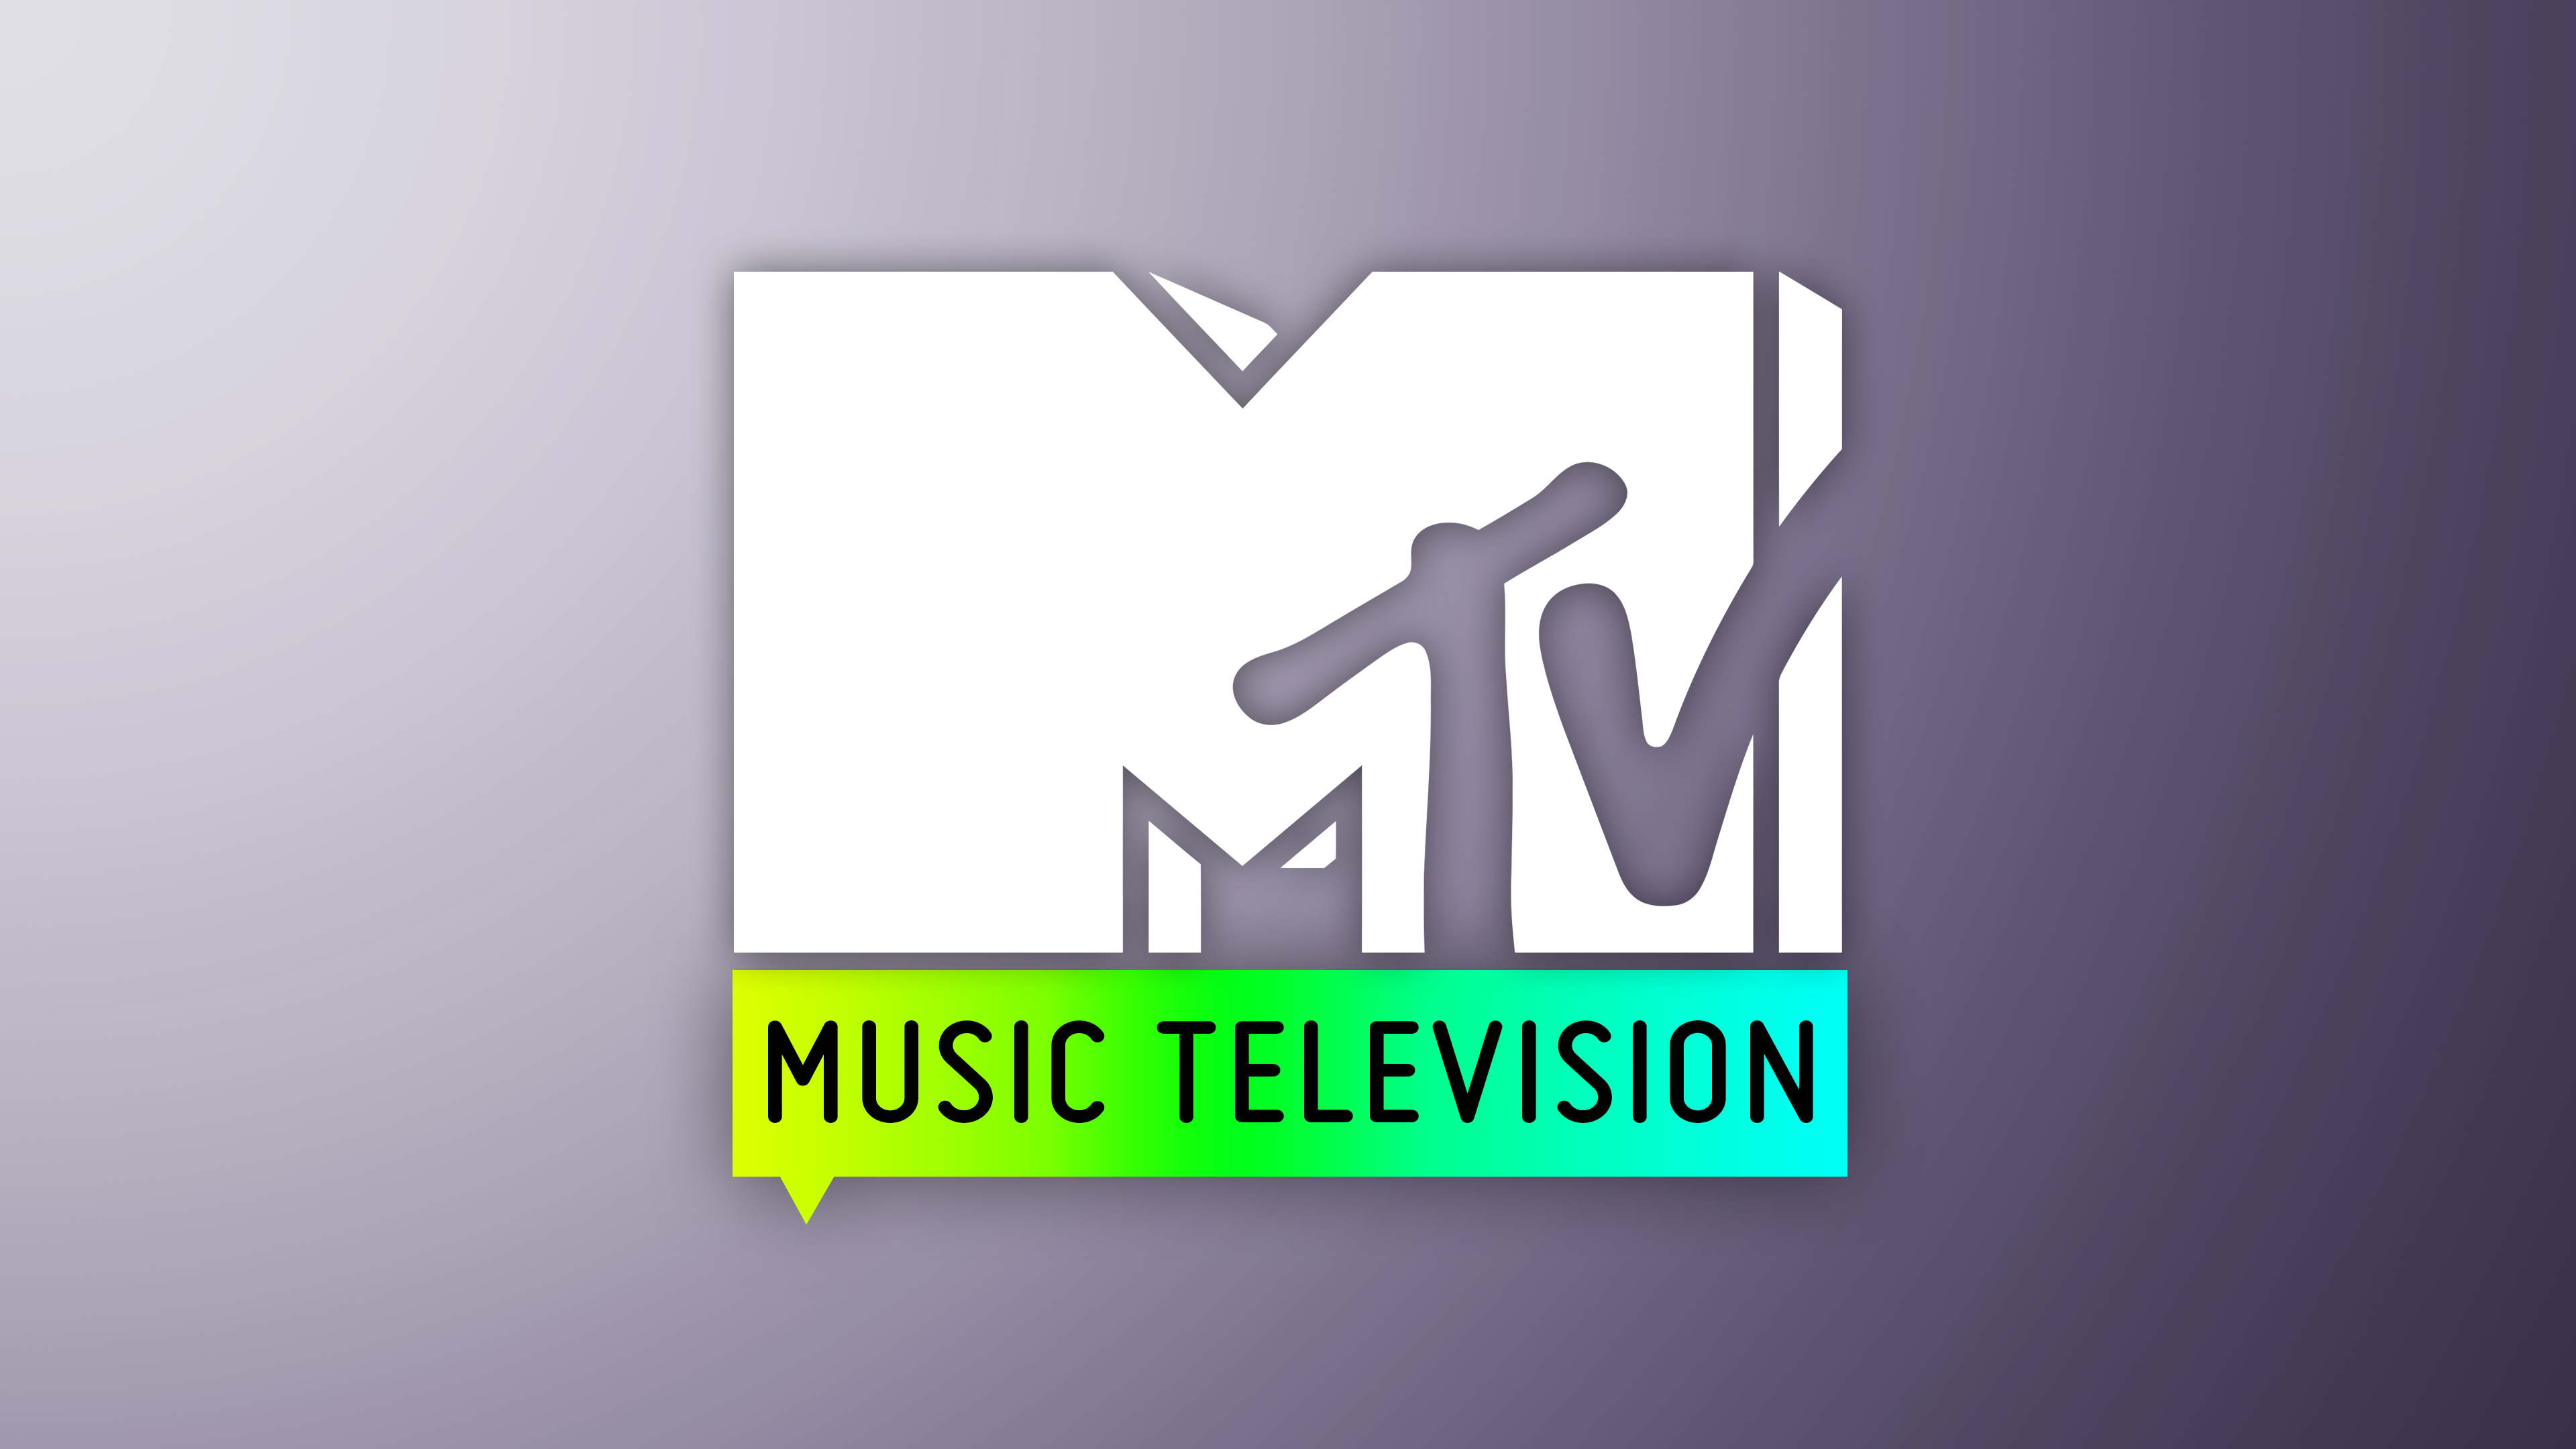 We will air your music video on MTV